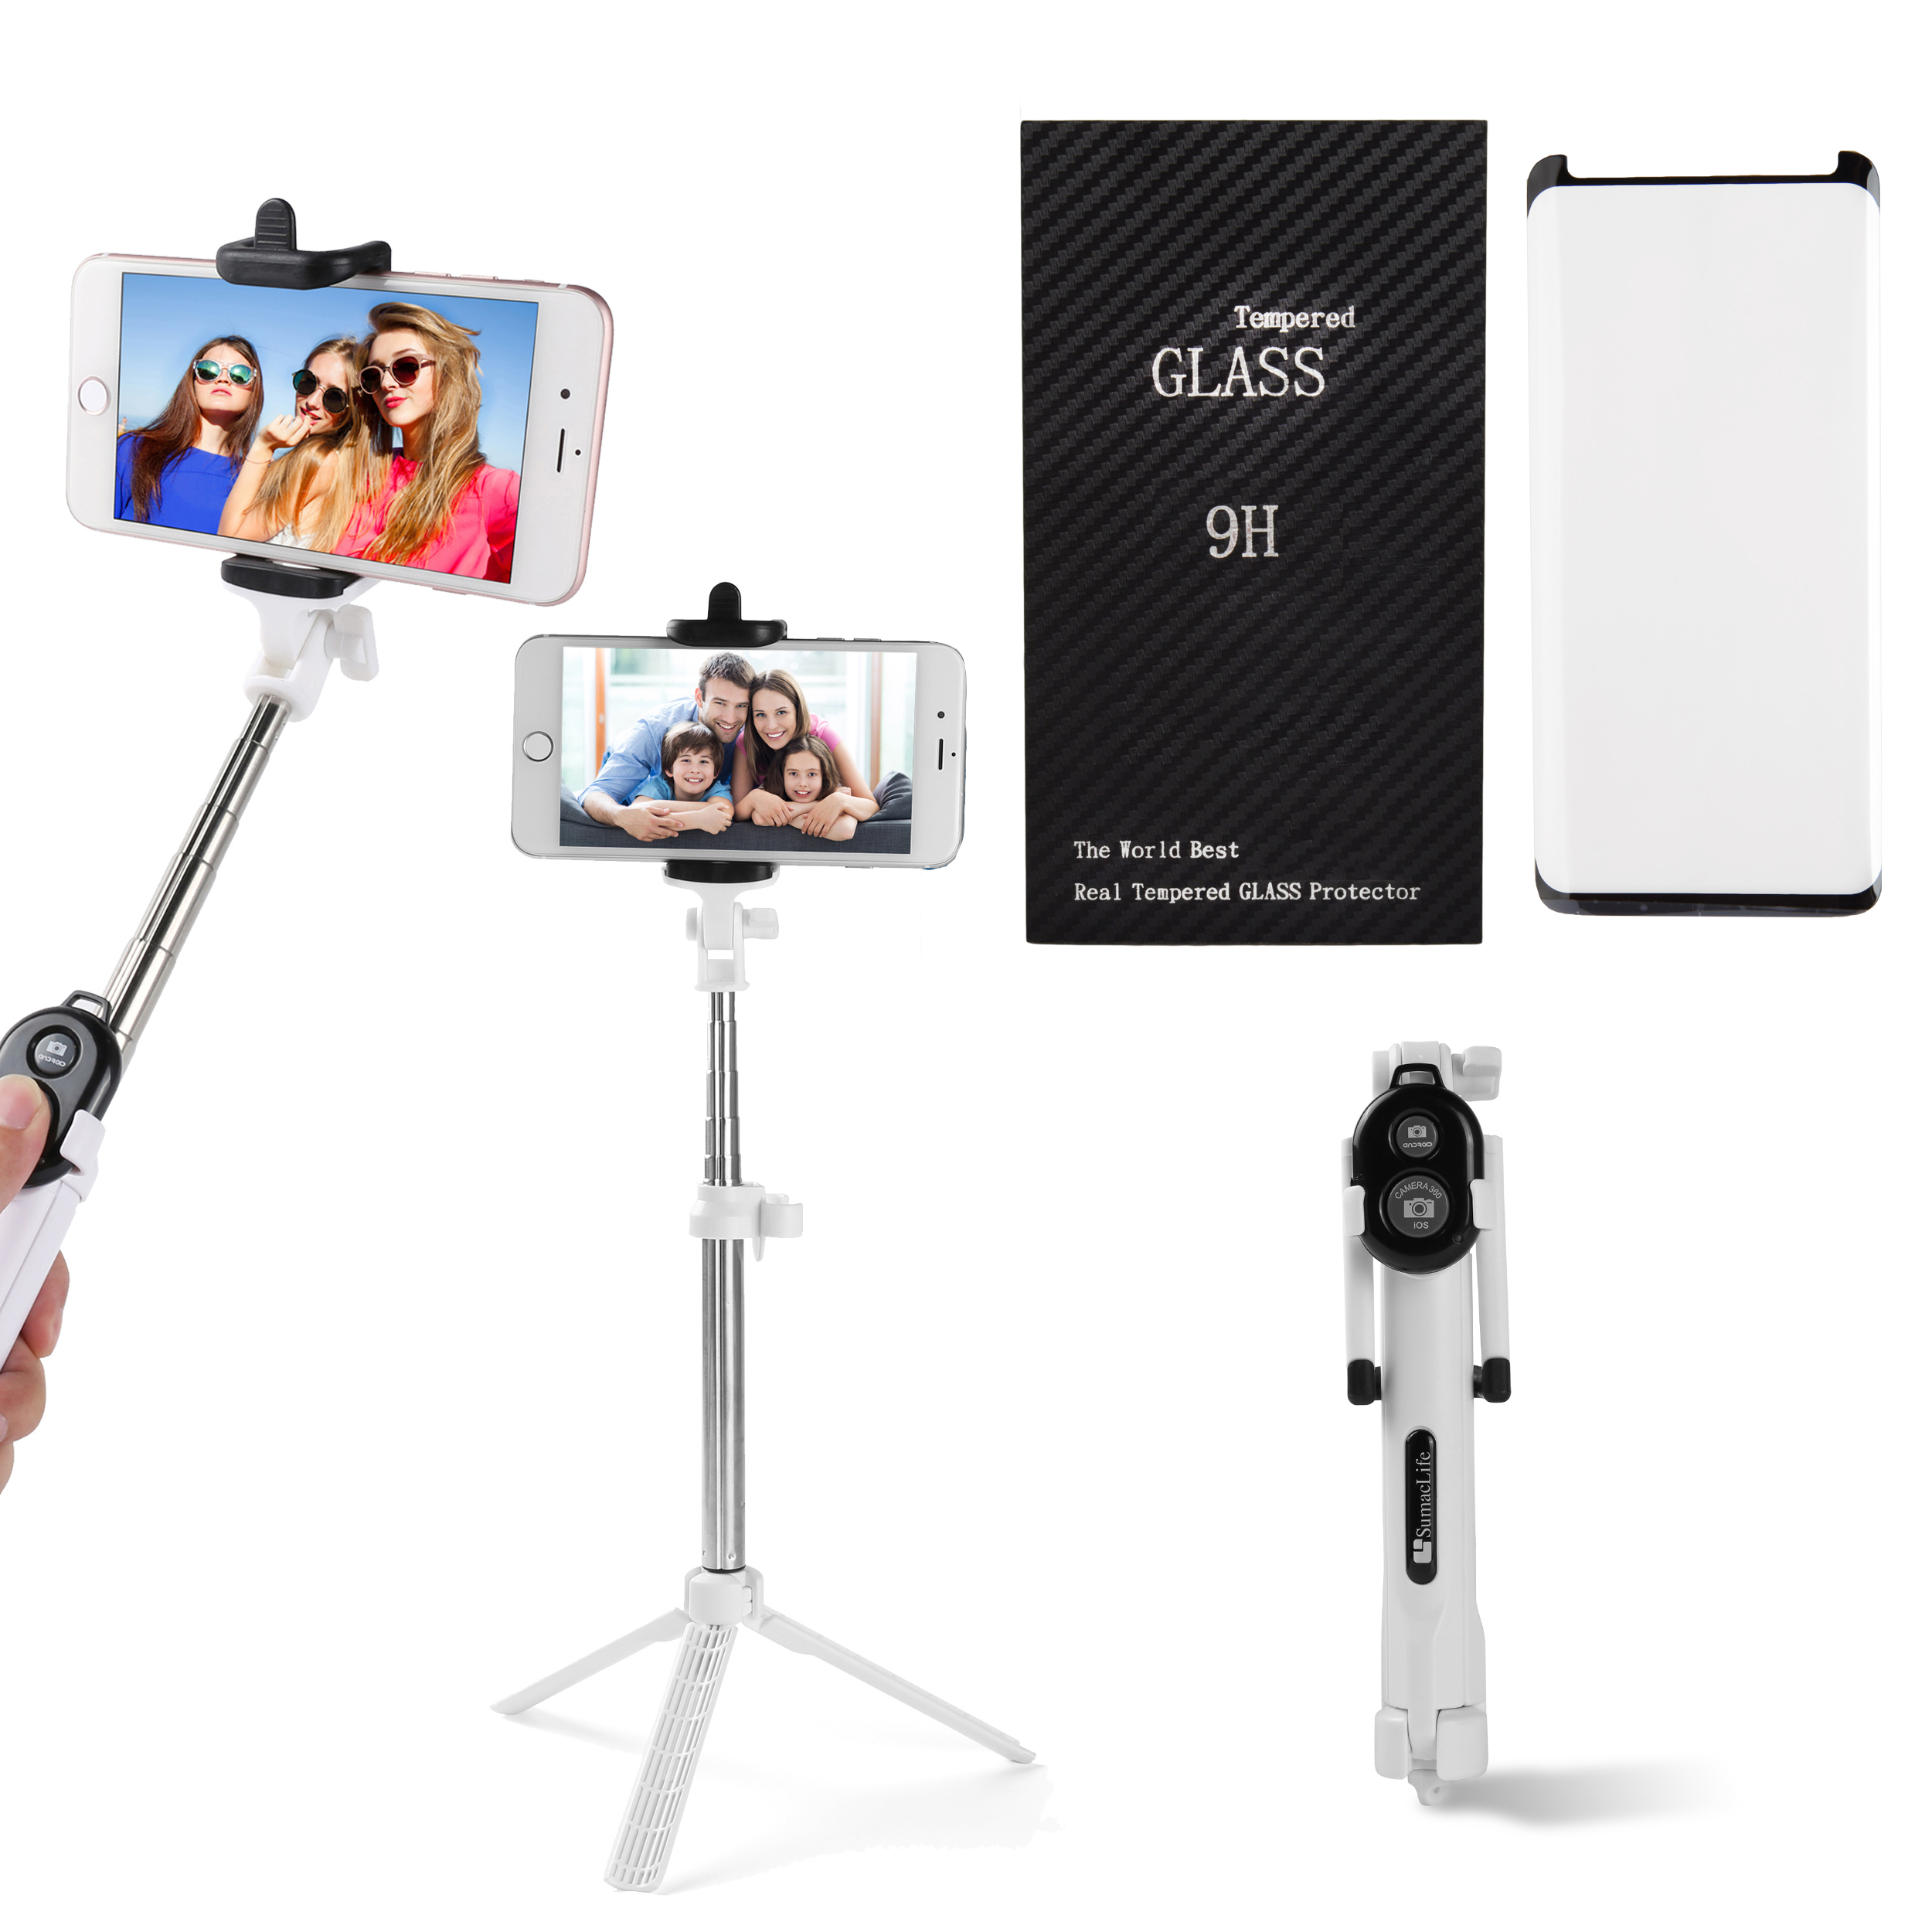 Portable Wireless Remote Control Selfie Stick and Mini Tripod with Tempered Glass Screen Protector for Samsung Galaxy S9 Plus